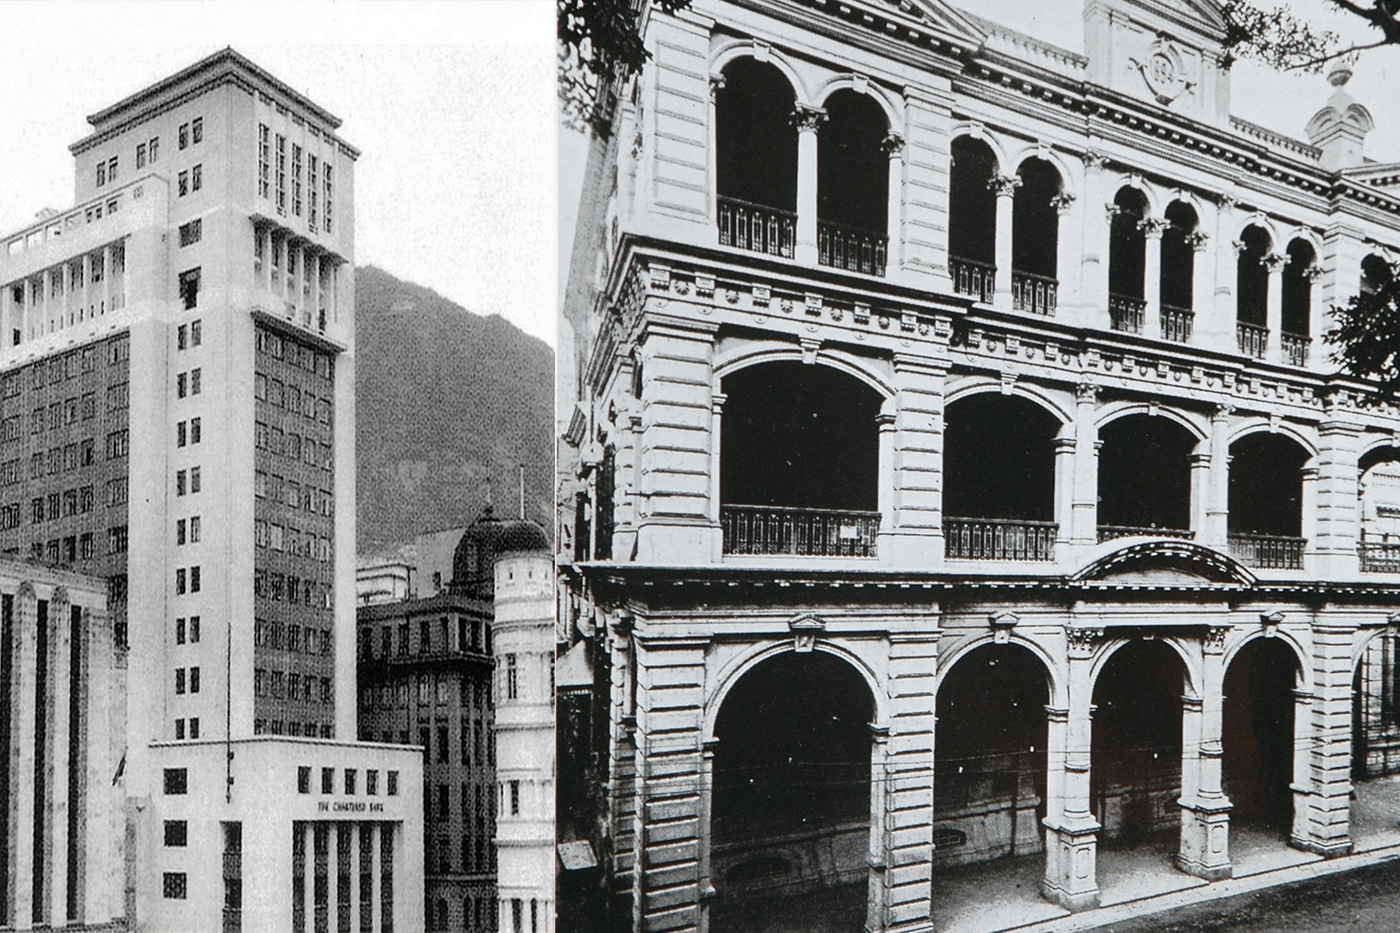 Chartered Bank in 1957 and 1894